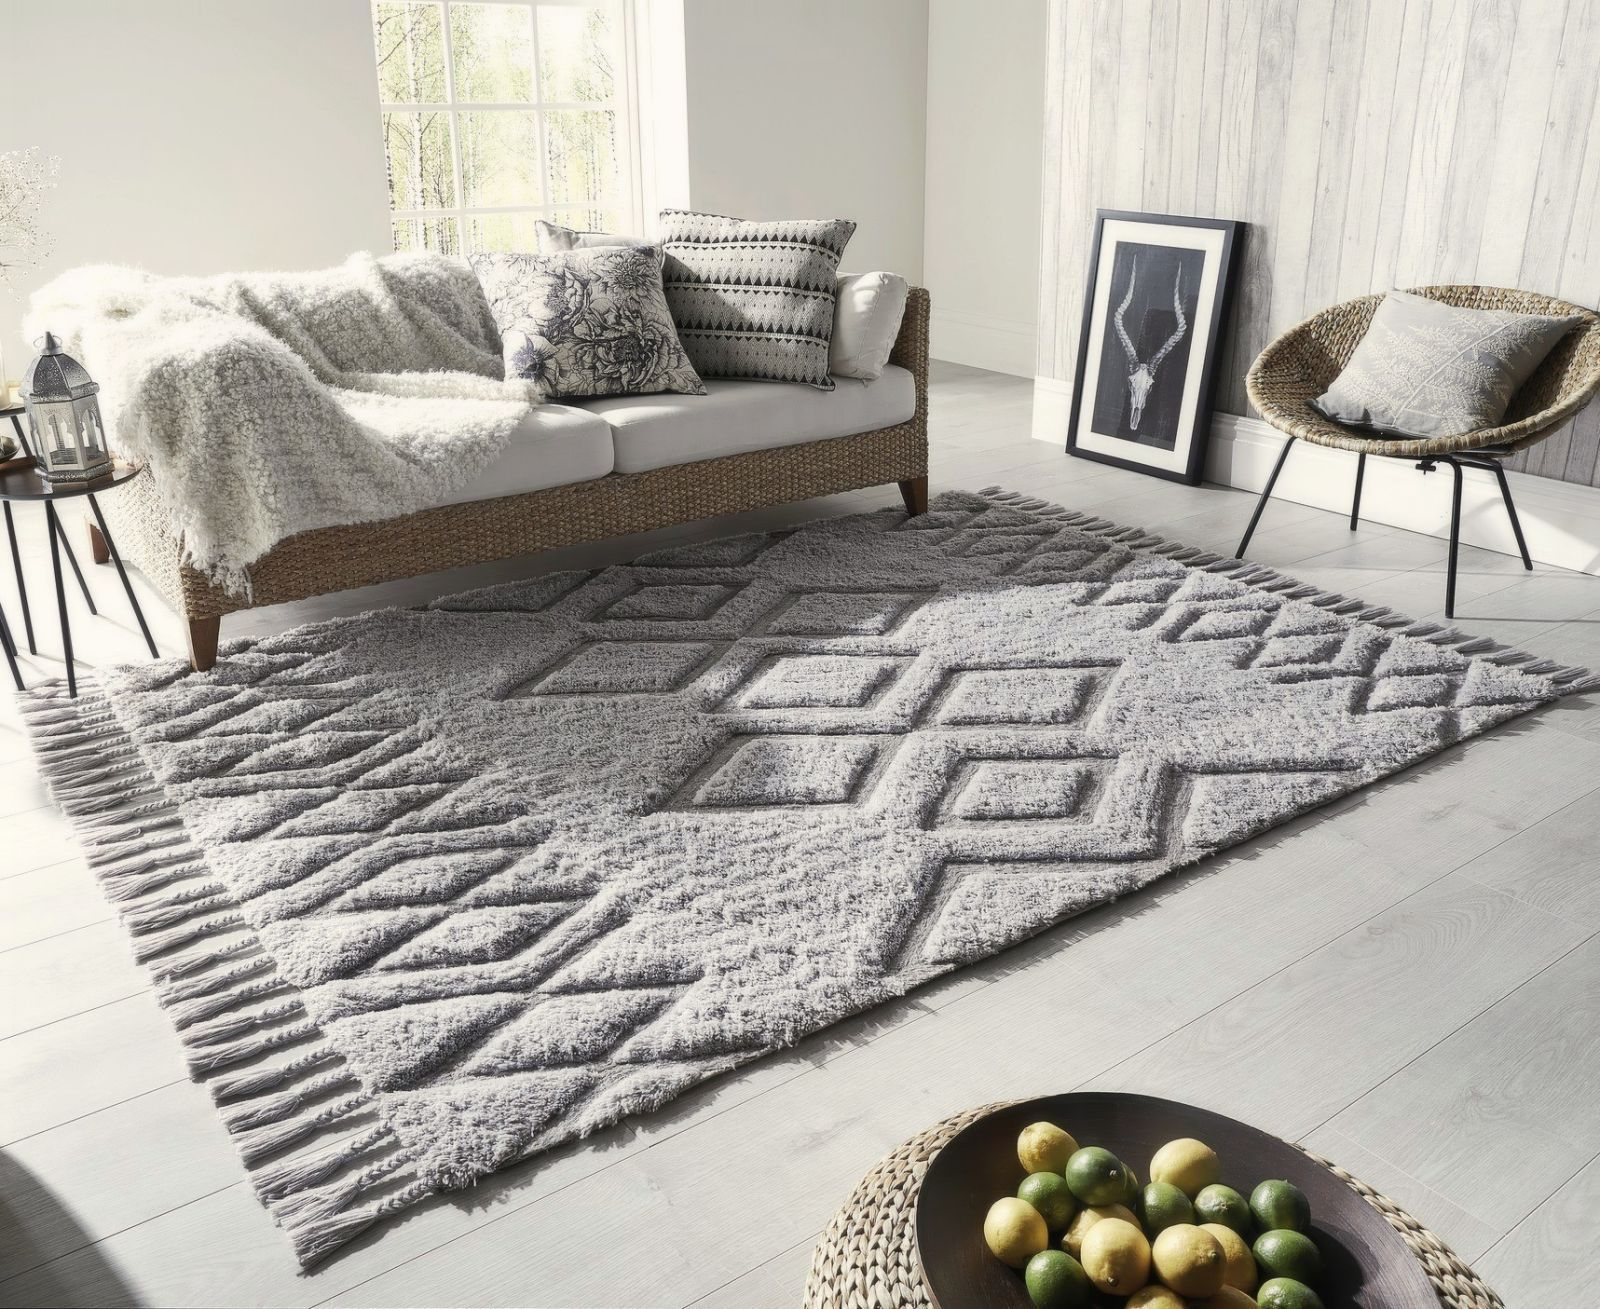 10 of the Best Grey Rugs - Large Rugs For Living Room, Bedroom and